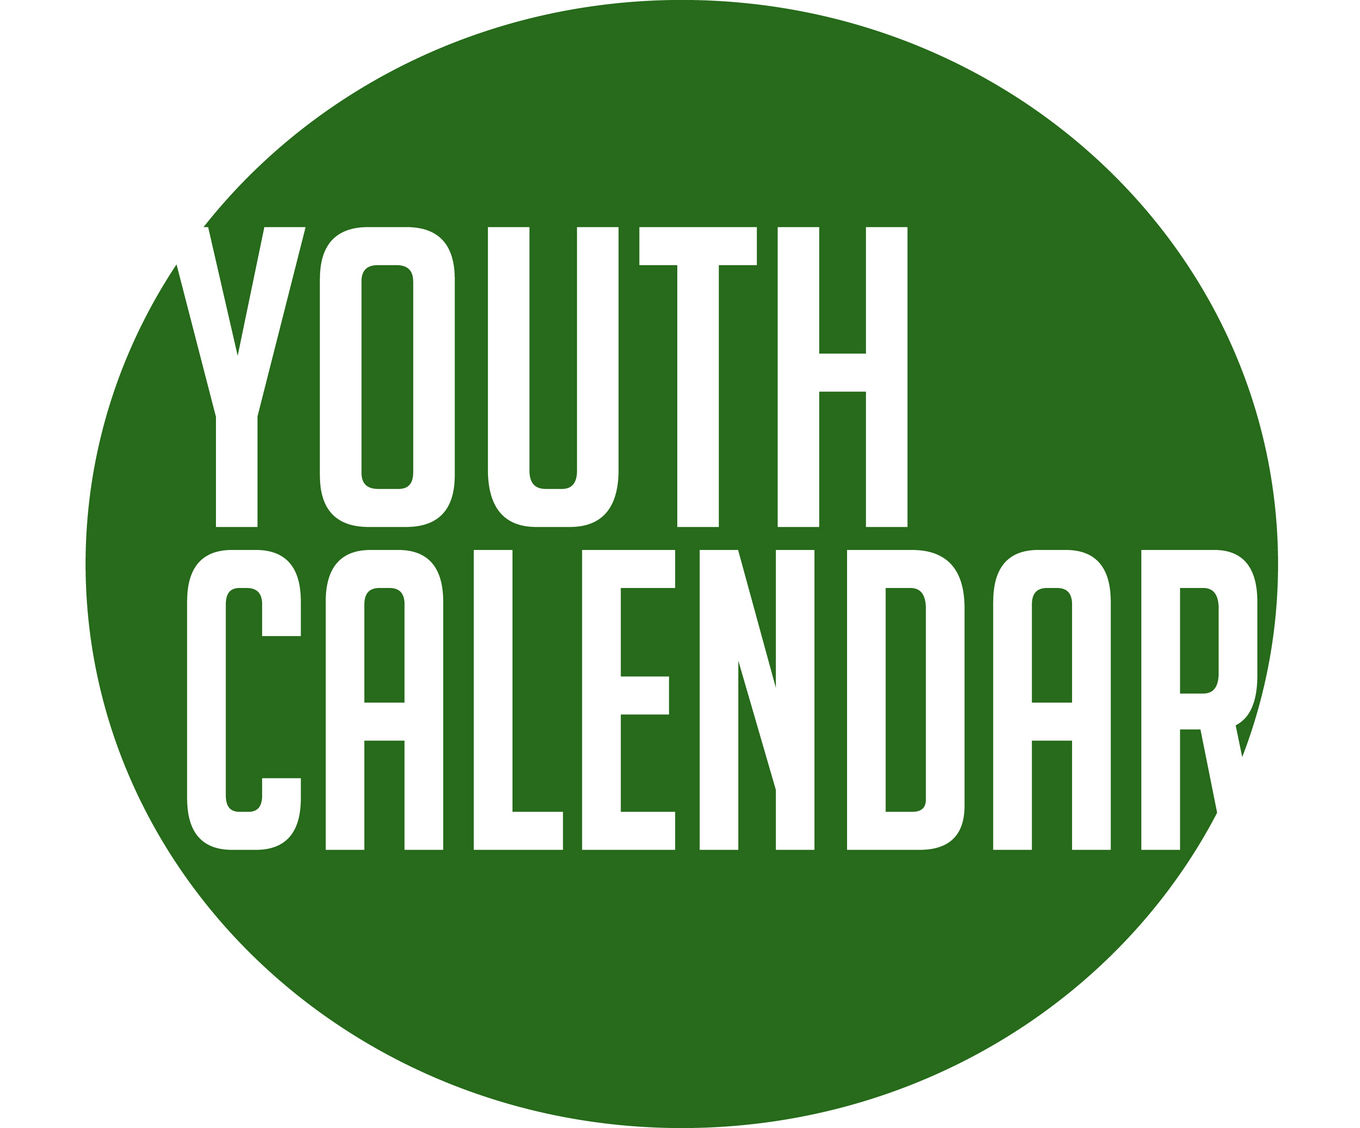 Youth Center Events Calendar